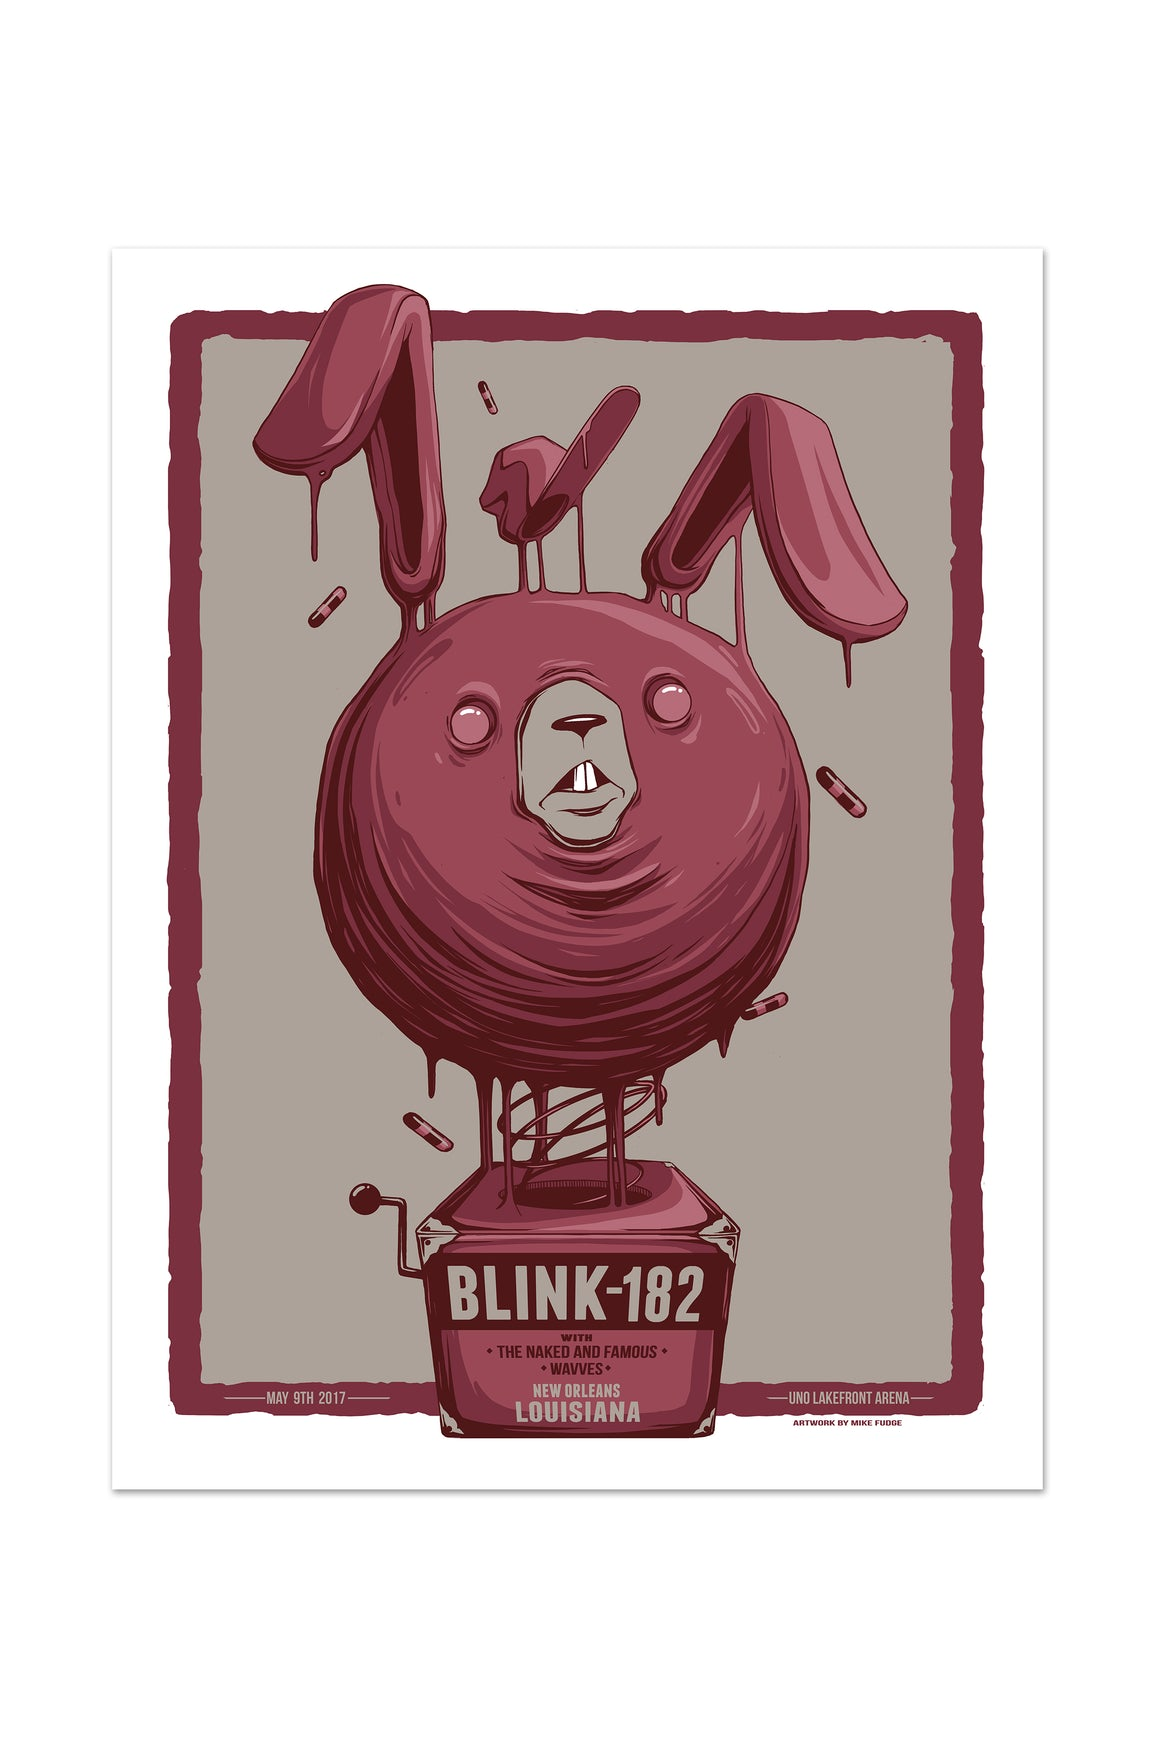 blink-182 5/9/2017 New Orleans, LA Event Poster